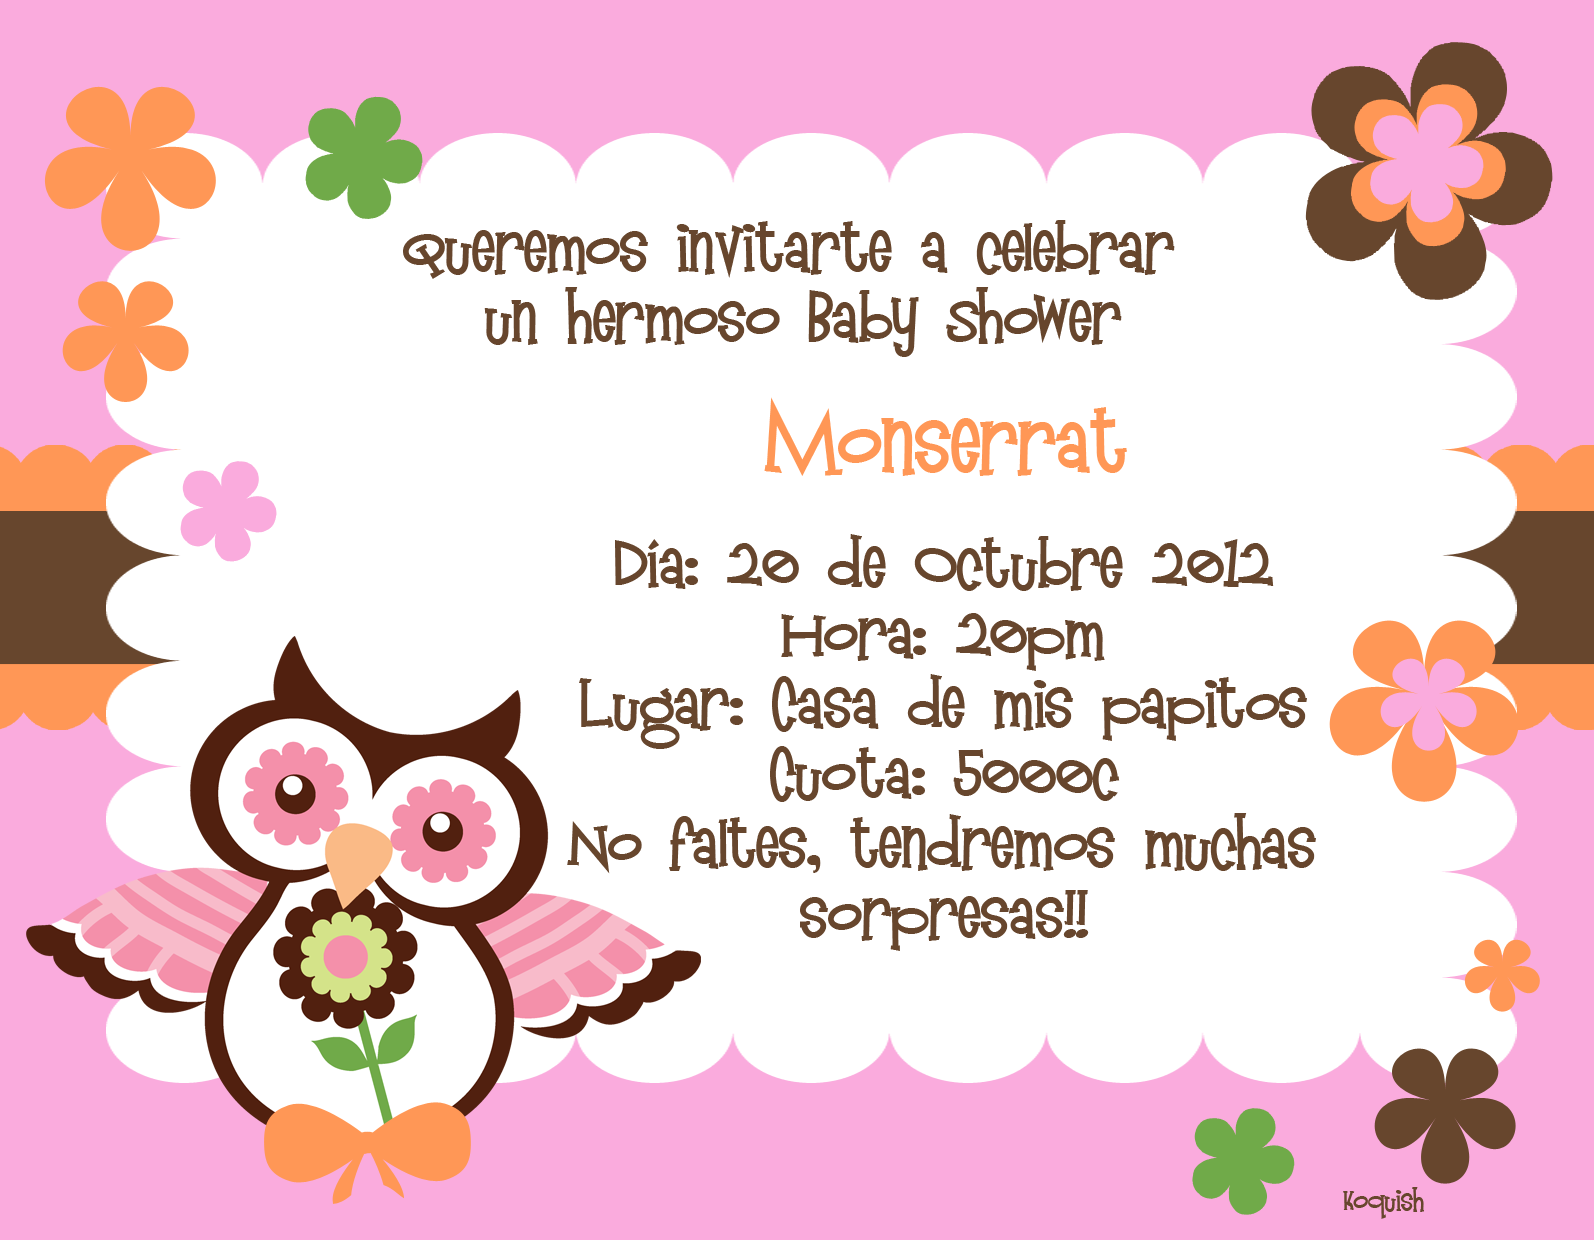 de8ee9dbe9df2 invitación en español - Google Search Baby Shower Invitaciones